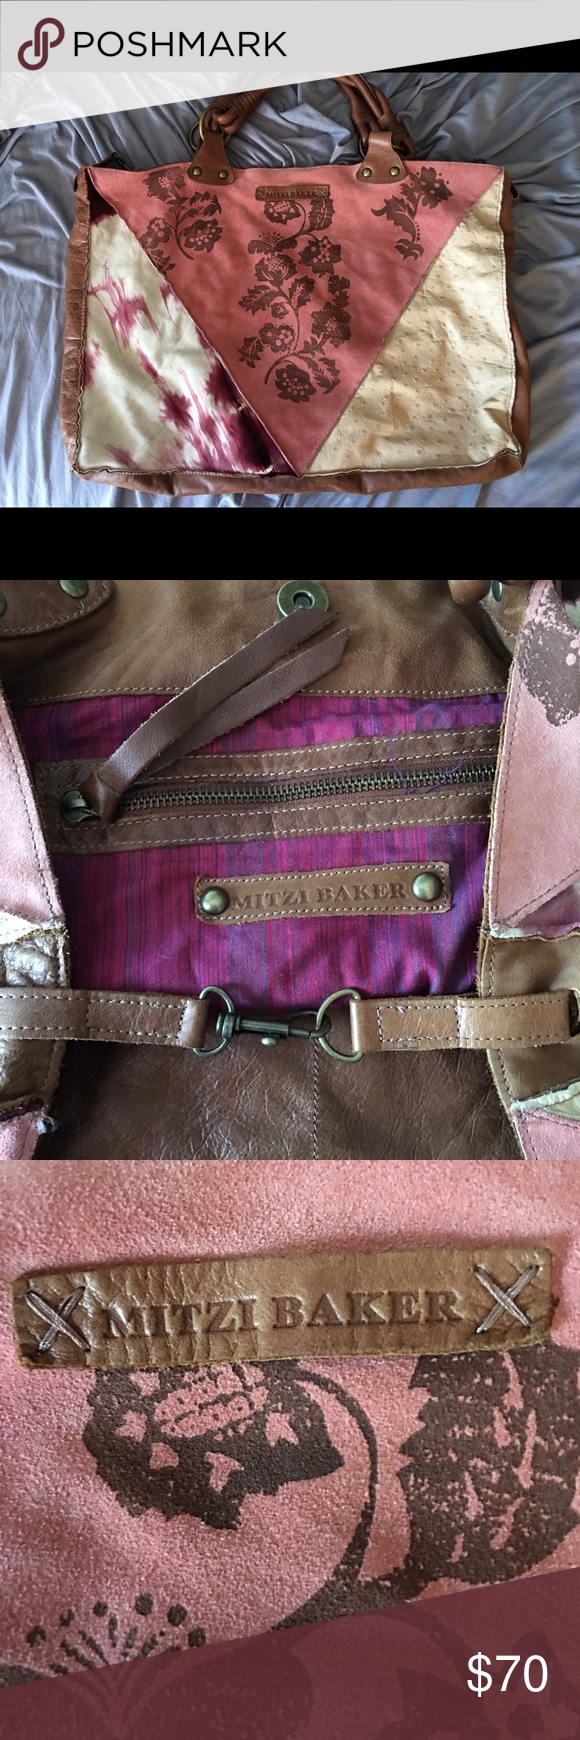 Mitzi Baker Hobo Bag Pink Blush Suede And Brown Leather Has Magnetic Snap Hook Closures Interior Is Magenta Purple Cotton With